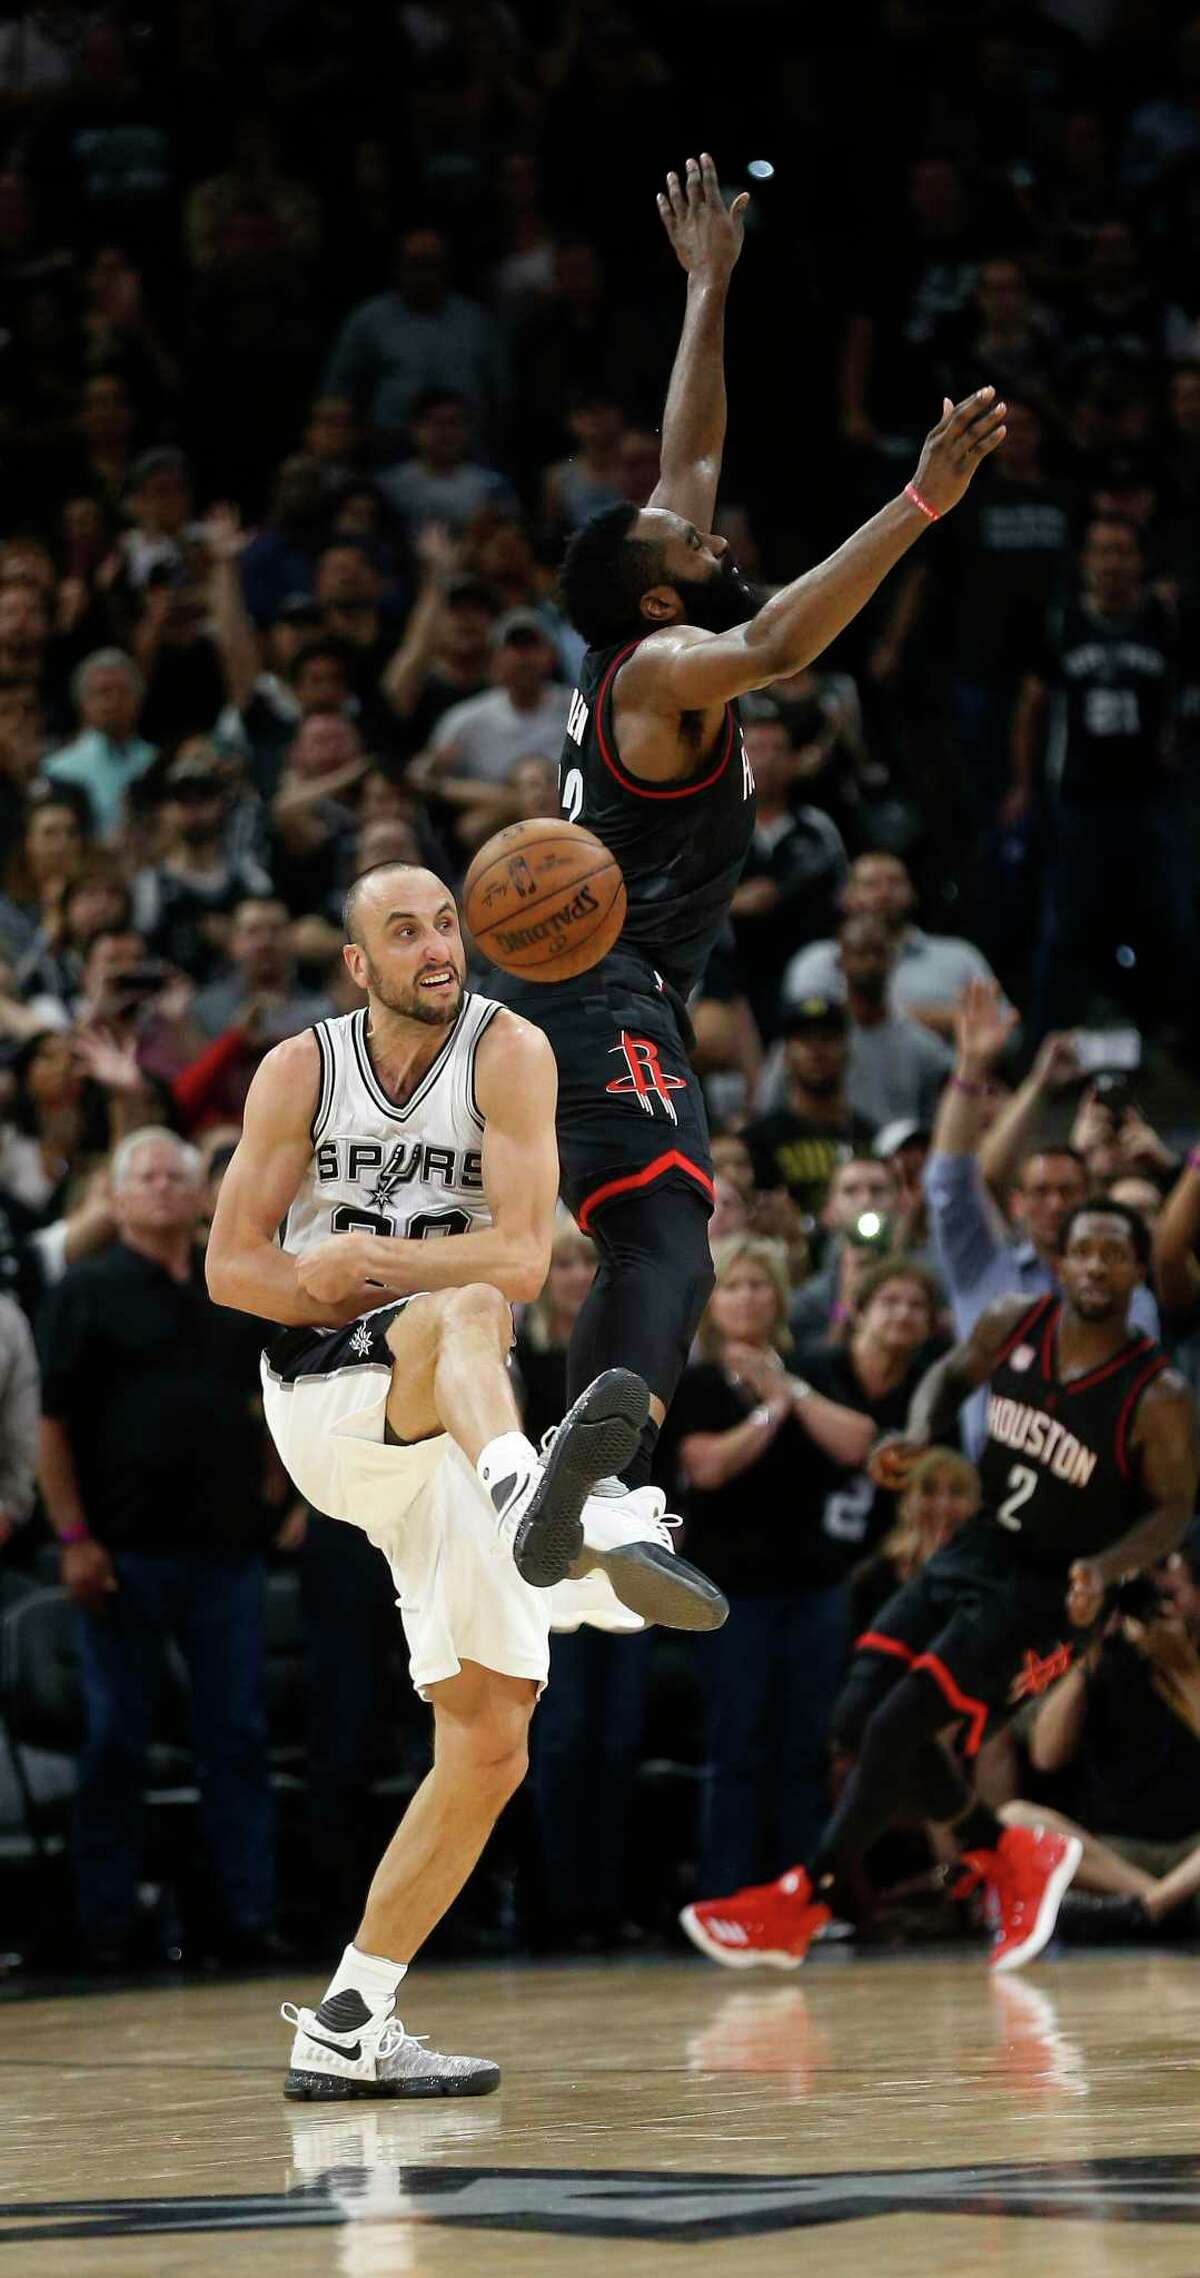 Spurs guard Manu Ginobili (20) swats the ball from Houston Rockets guard James Harden (13) in the final seconds during overtime of Game 5 of the second round of the Western Conference NBA playoffs at AT&T Center on May 9, 2017, in San Antonio.